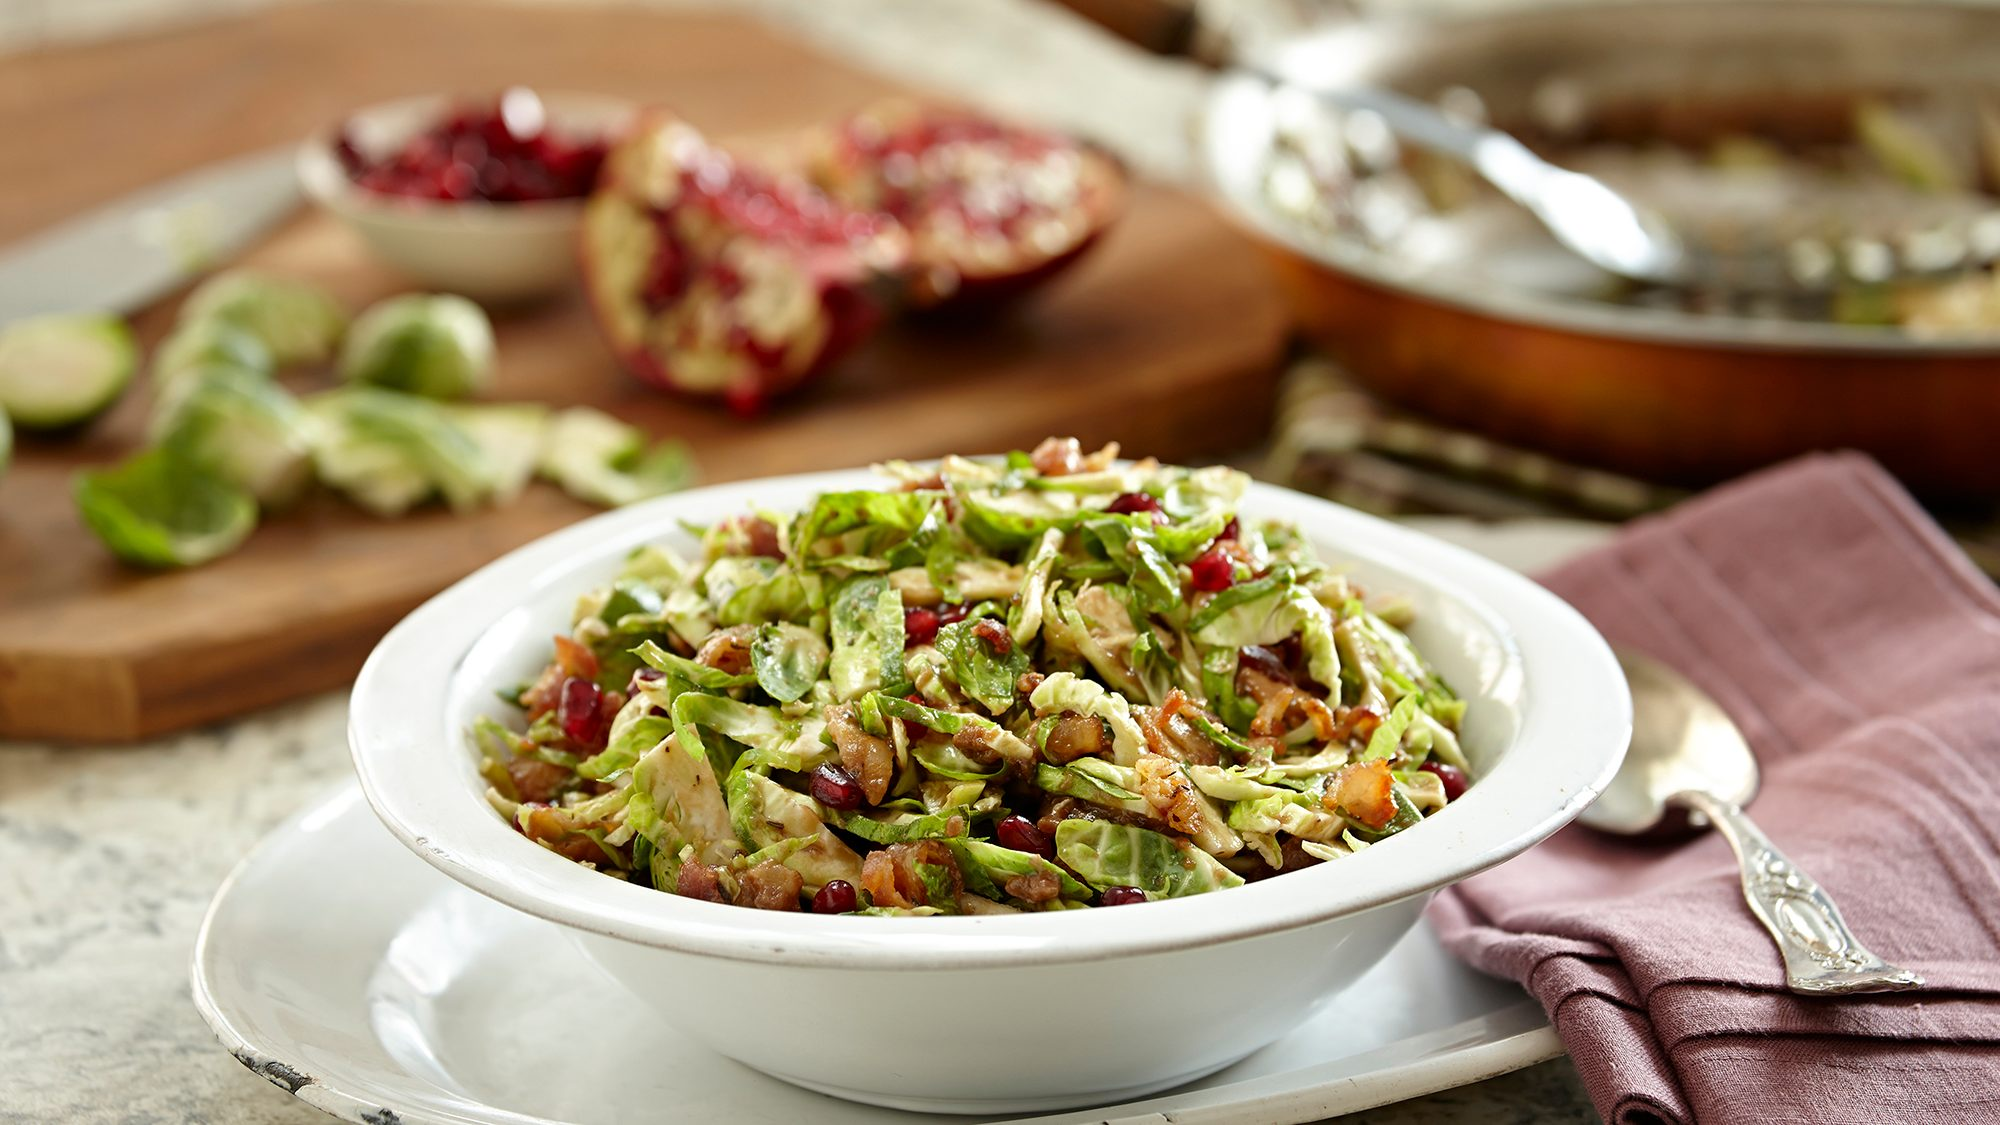 McCormick Goourmet Shaved Brussels Sprouts Salad with Cranberries and Toasted Walnuts